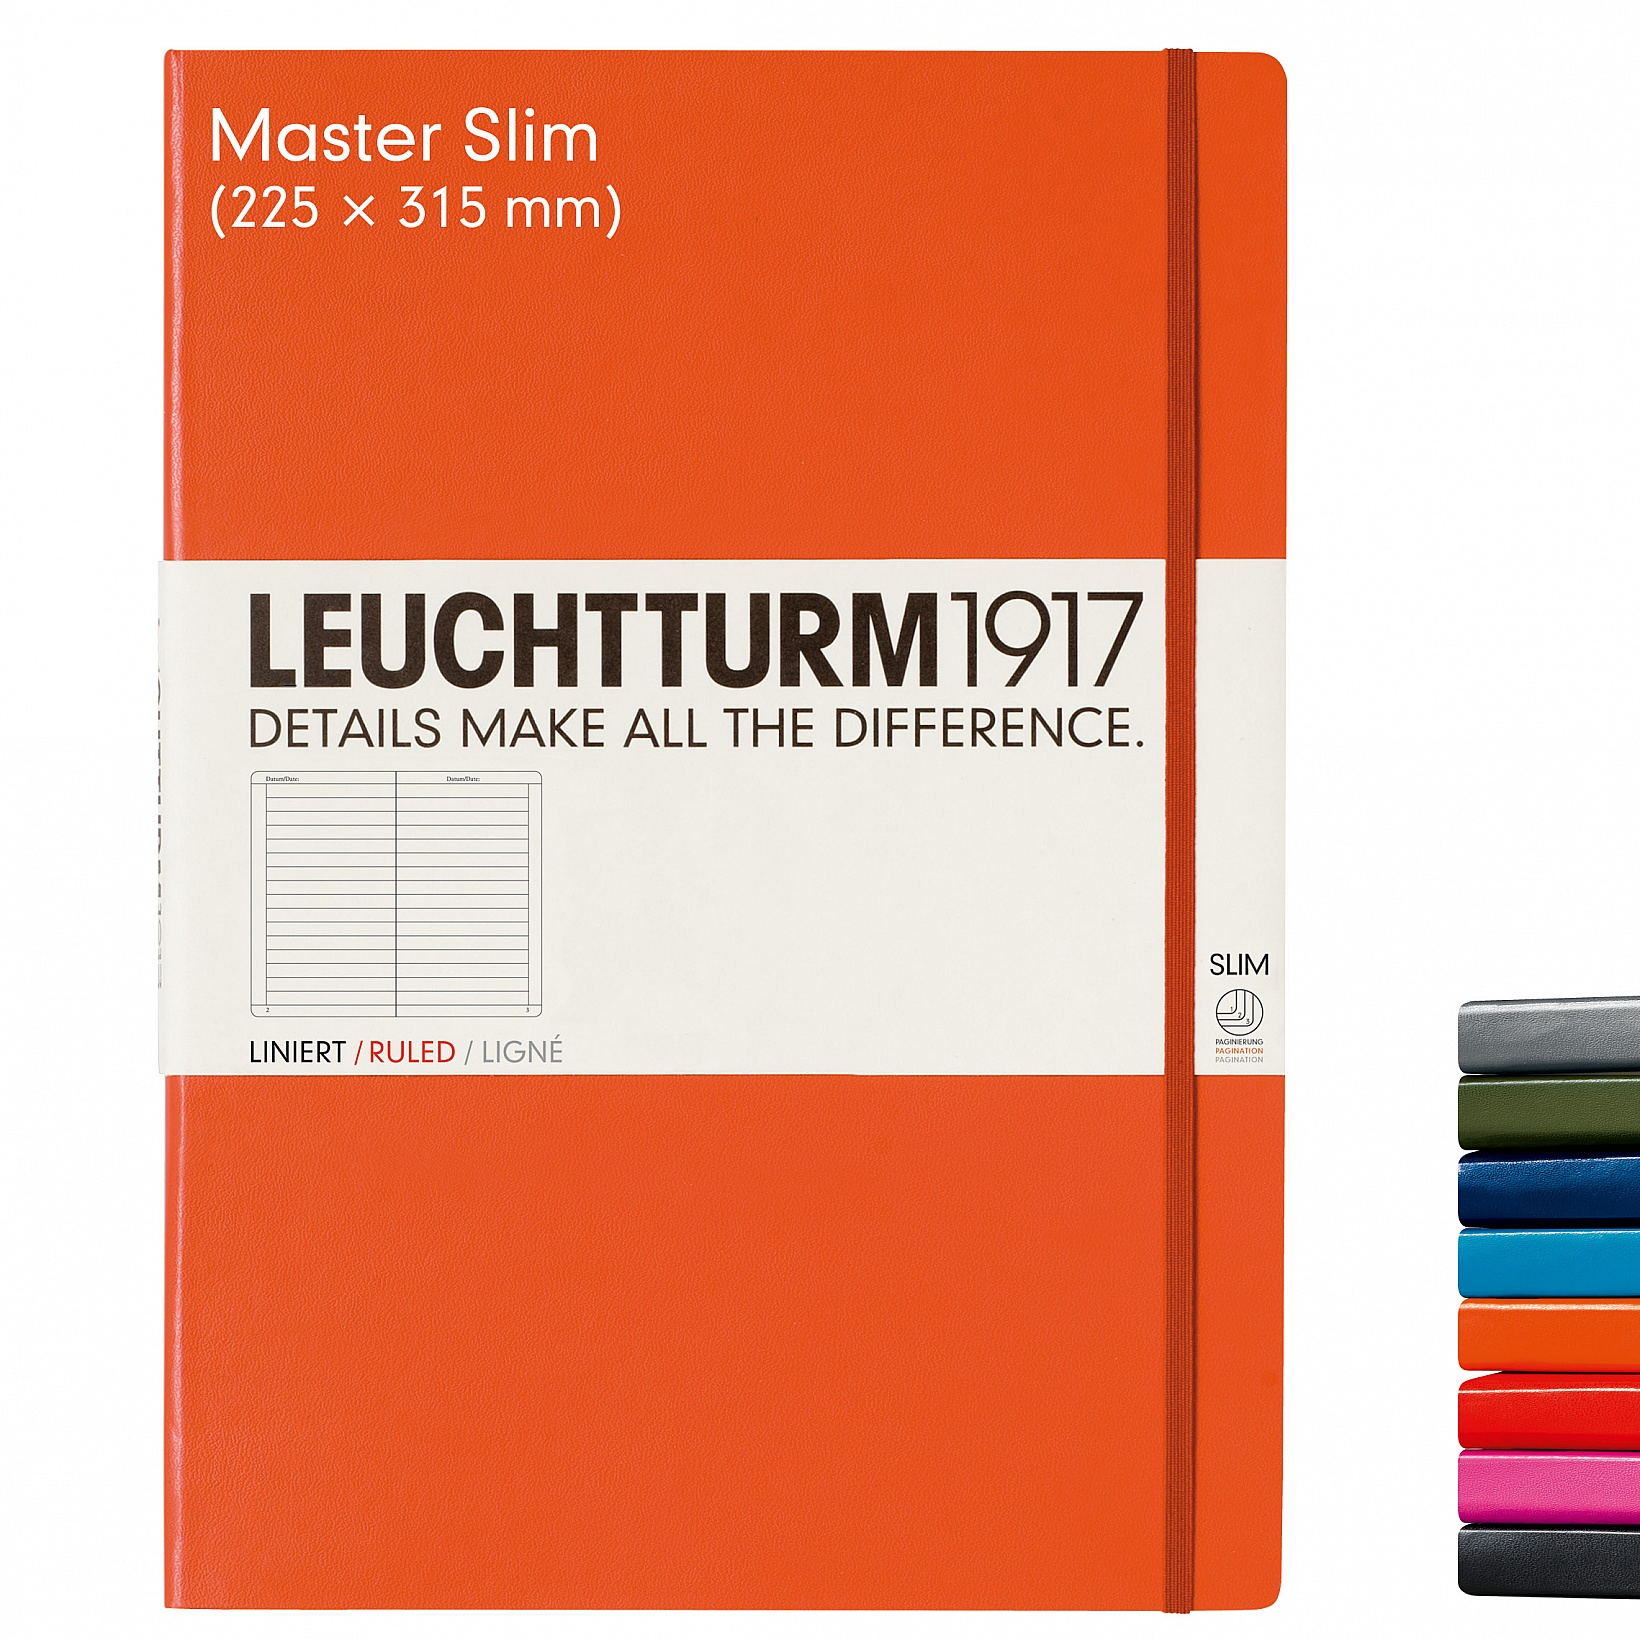 Master Slim 121 Paged Notebook